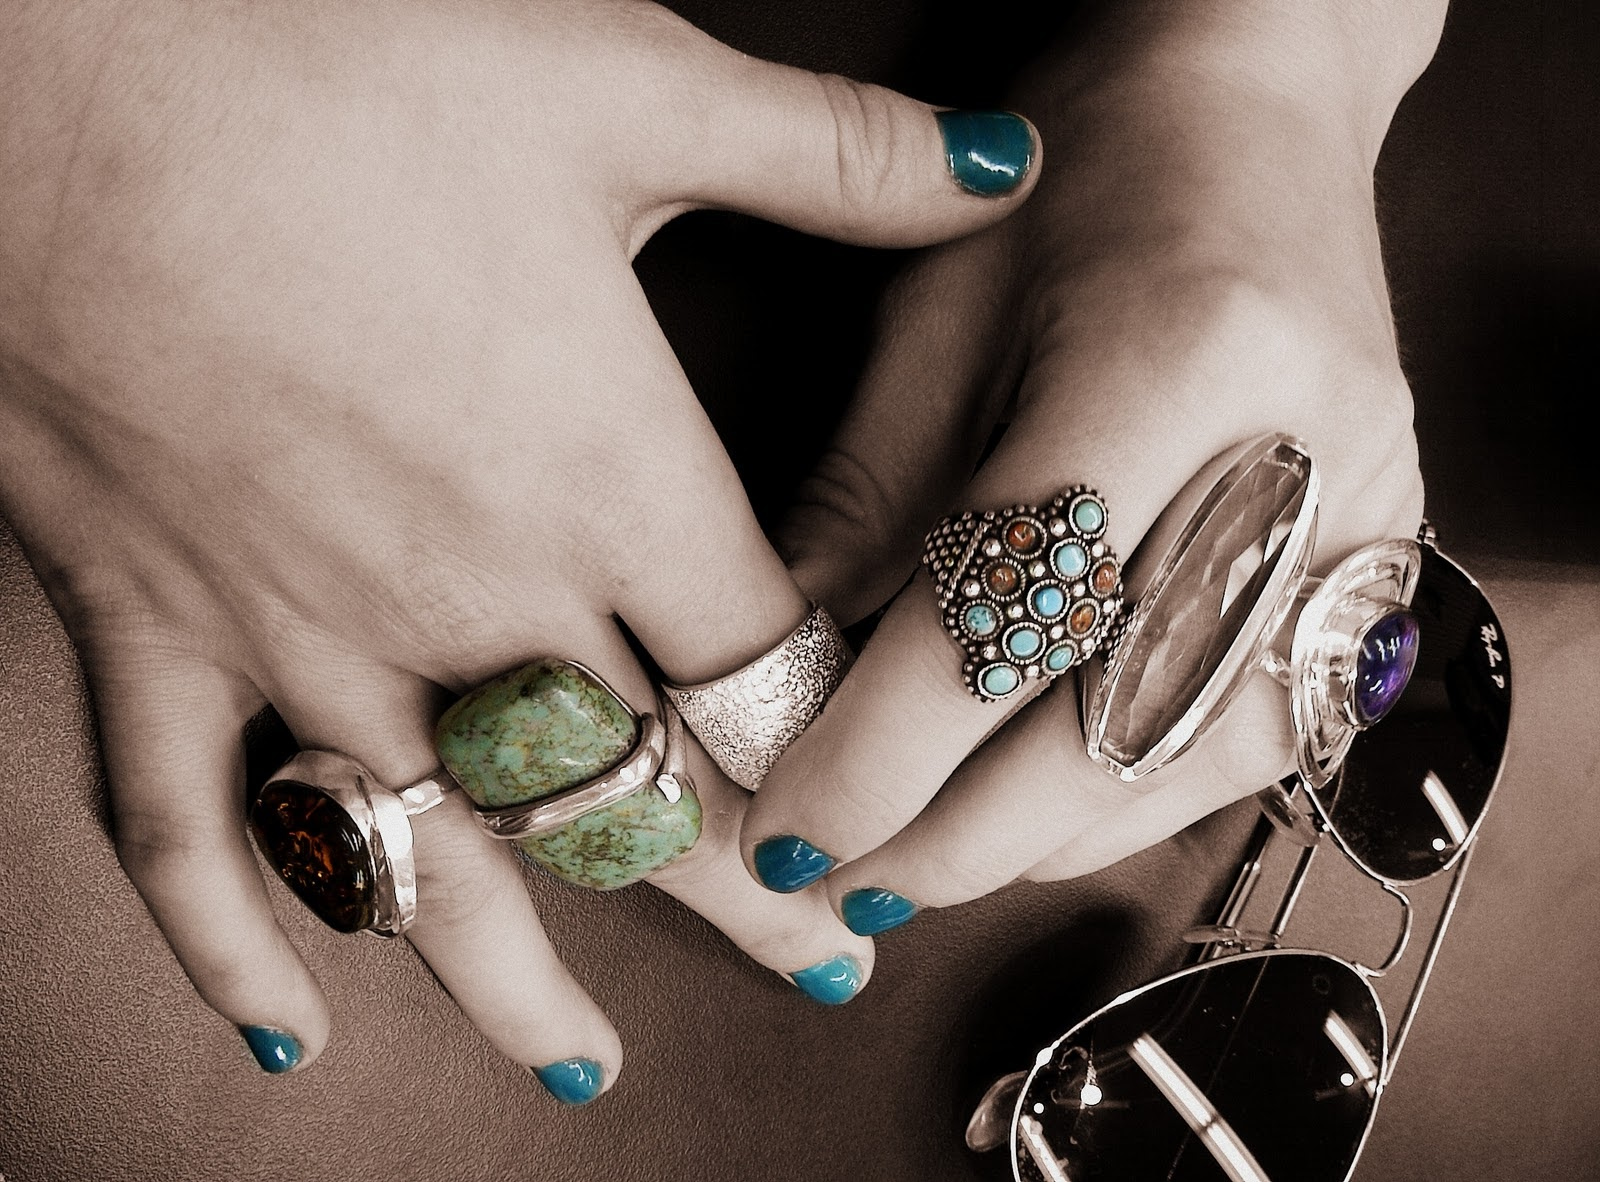 my tattoo us: Beautiful Hands and Rings